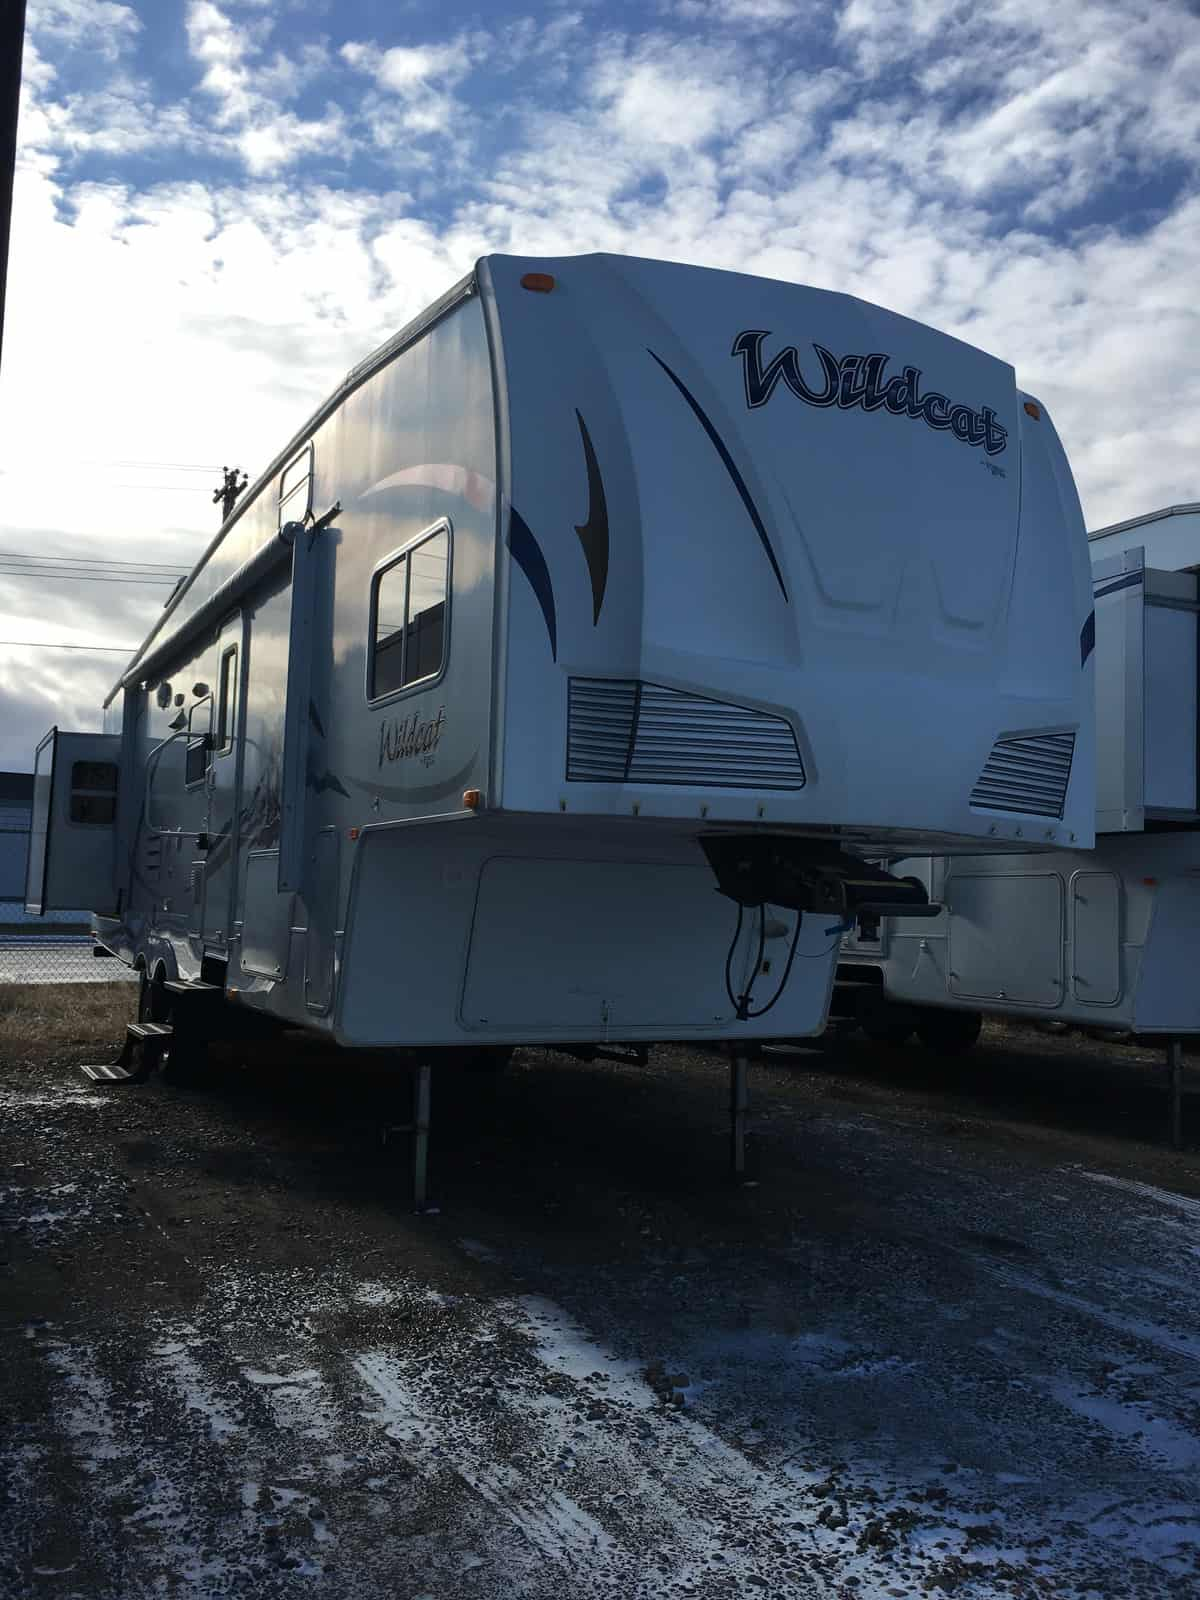 USED 2009 Forest River *WILDCAT 32QBBS